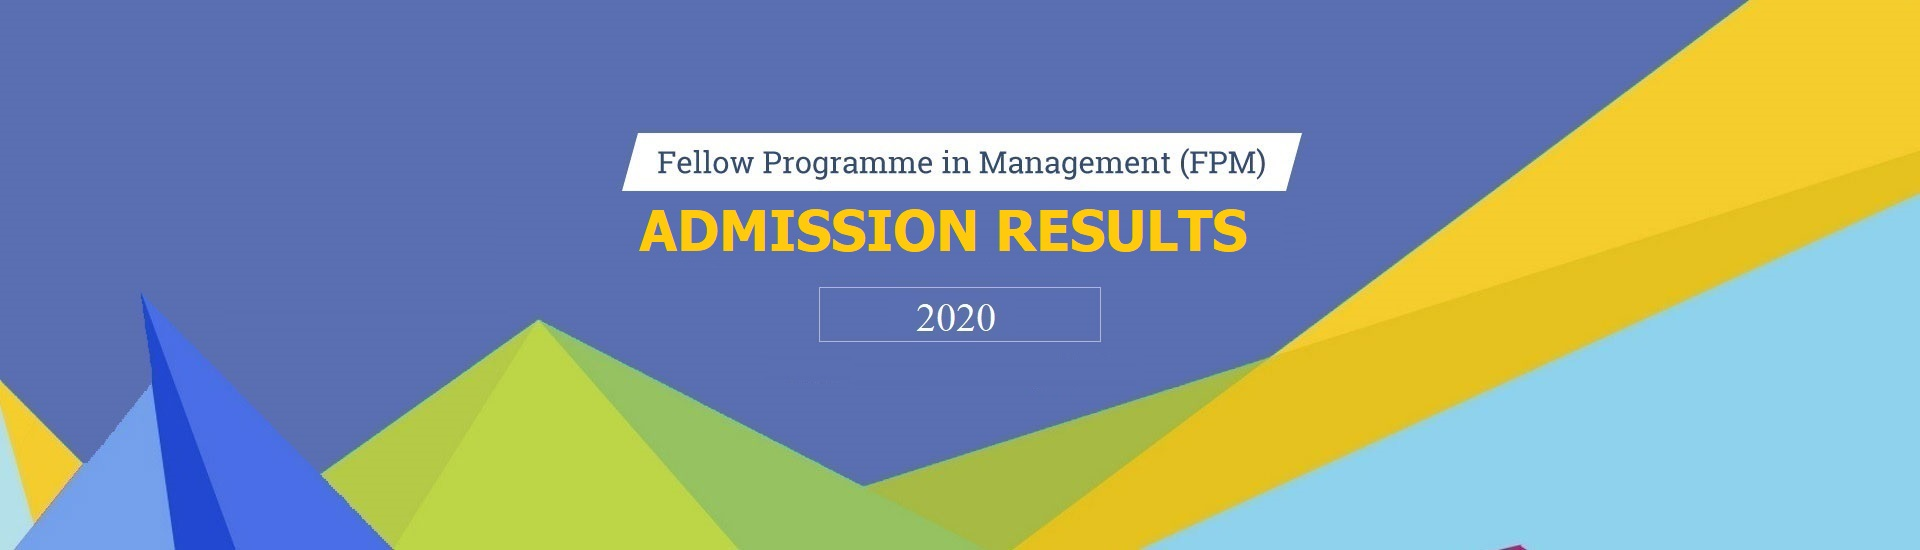 RESULTS-FPM ADMISSION 2020